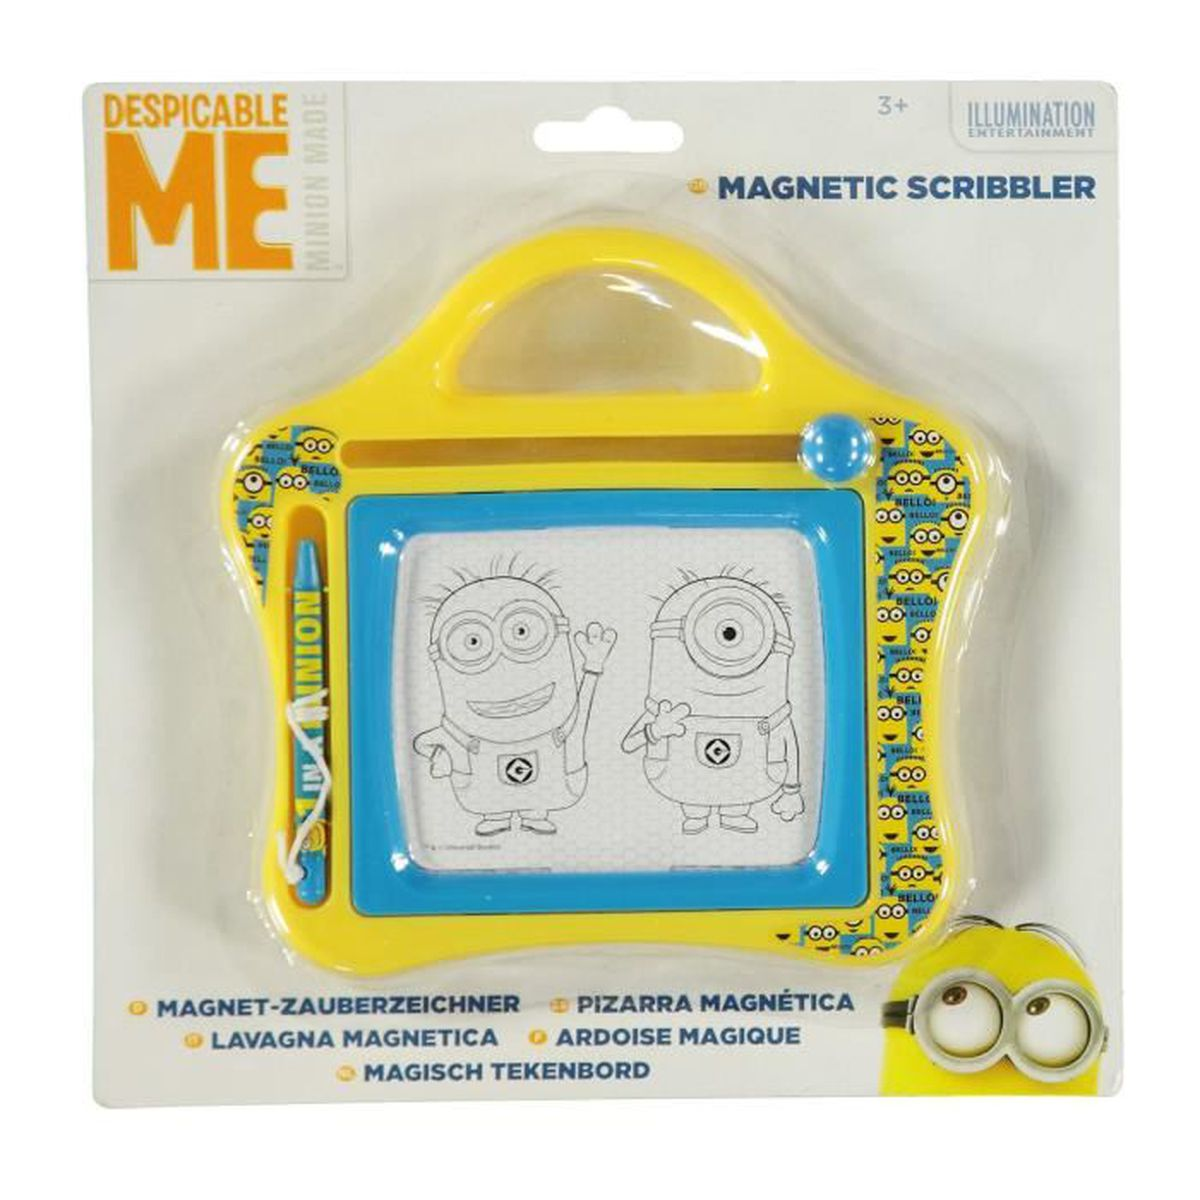 moi moche et mechant minions ardoise magique tableau dessin magnetique enfant achat vente. Black Bedroom Furniture Sets. Home Design Ideas